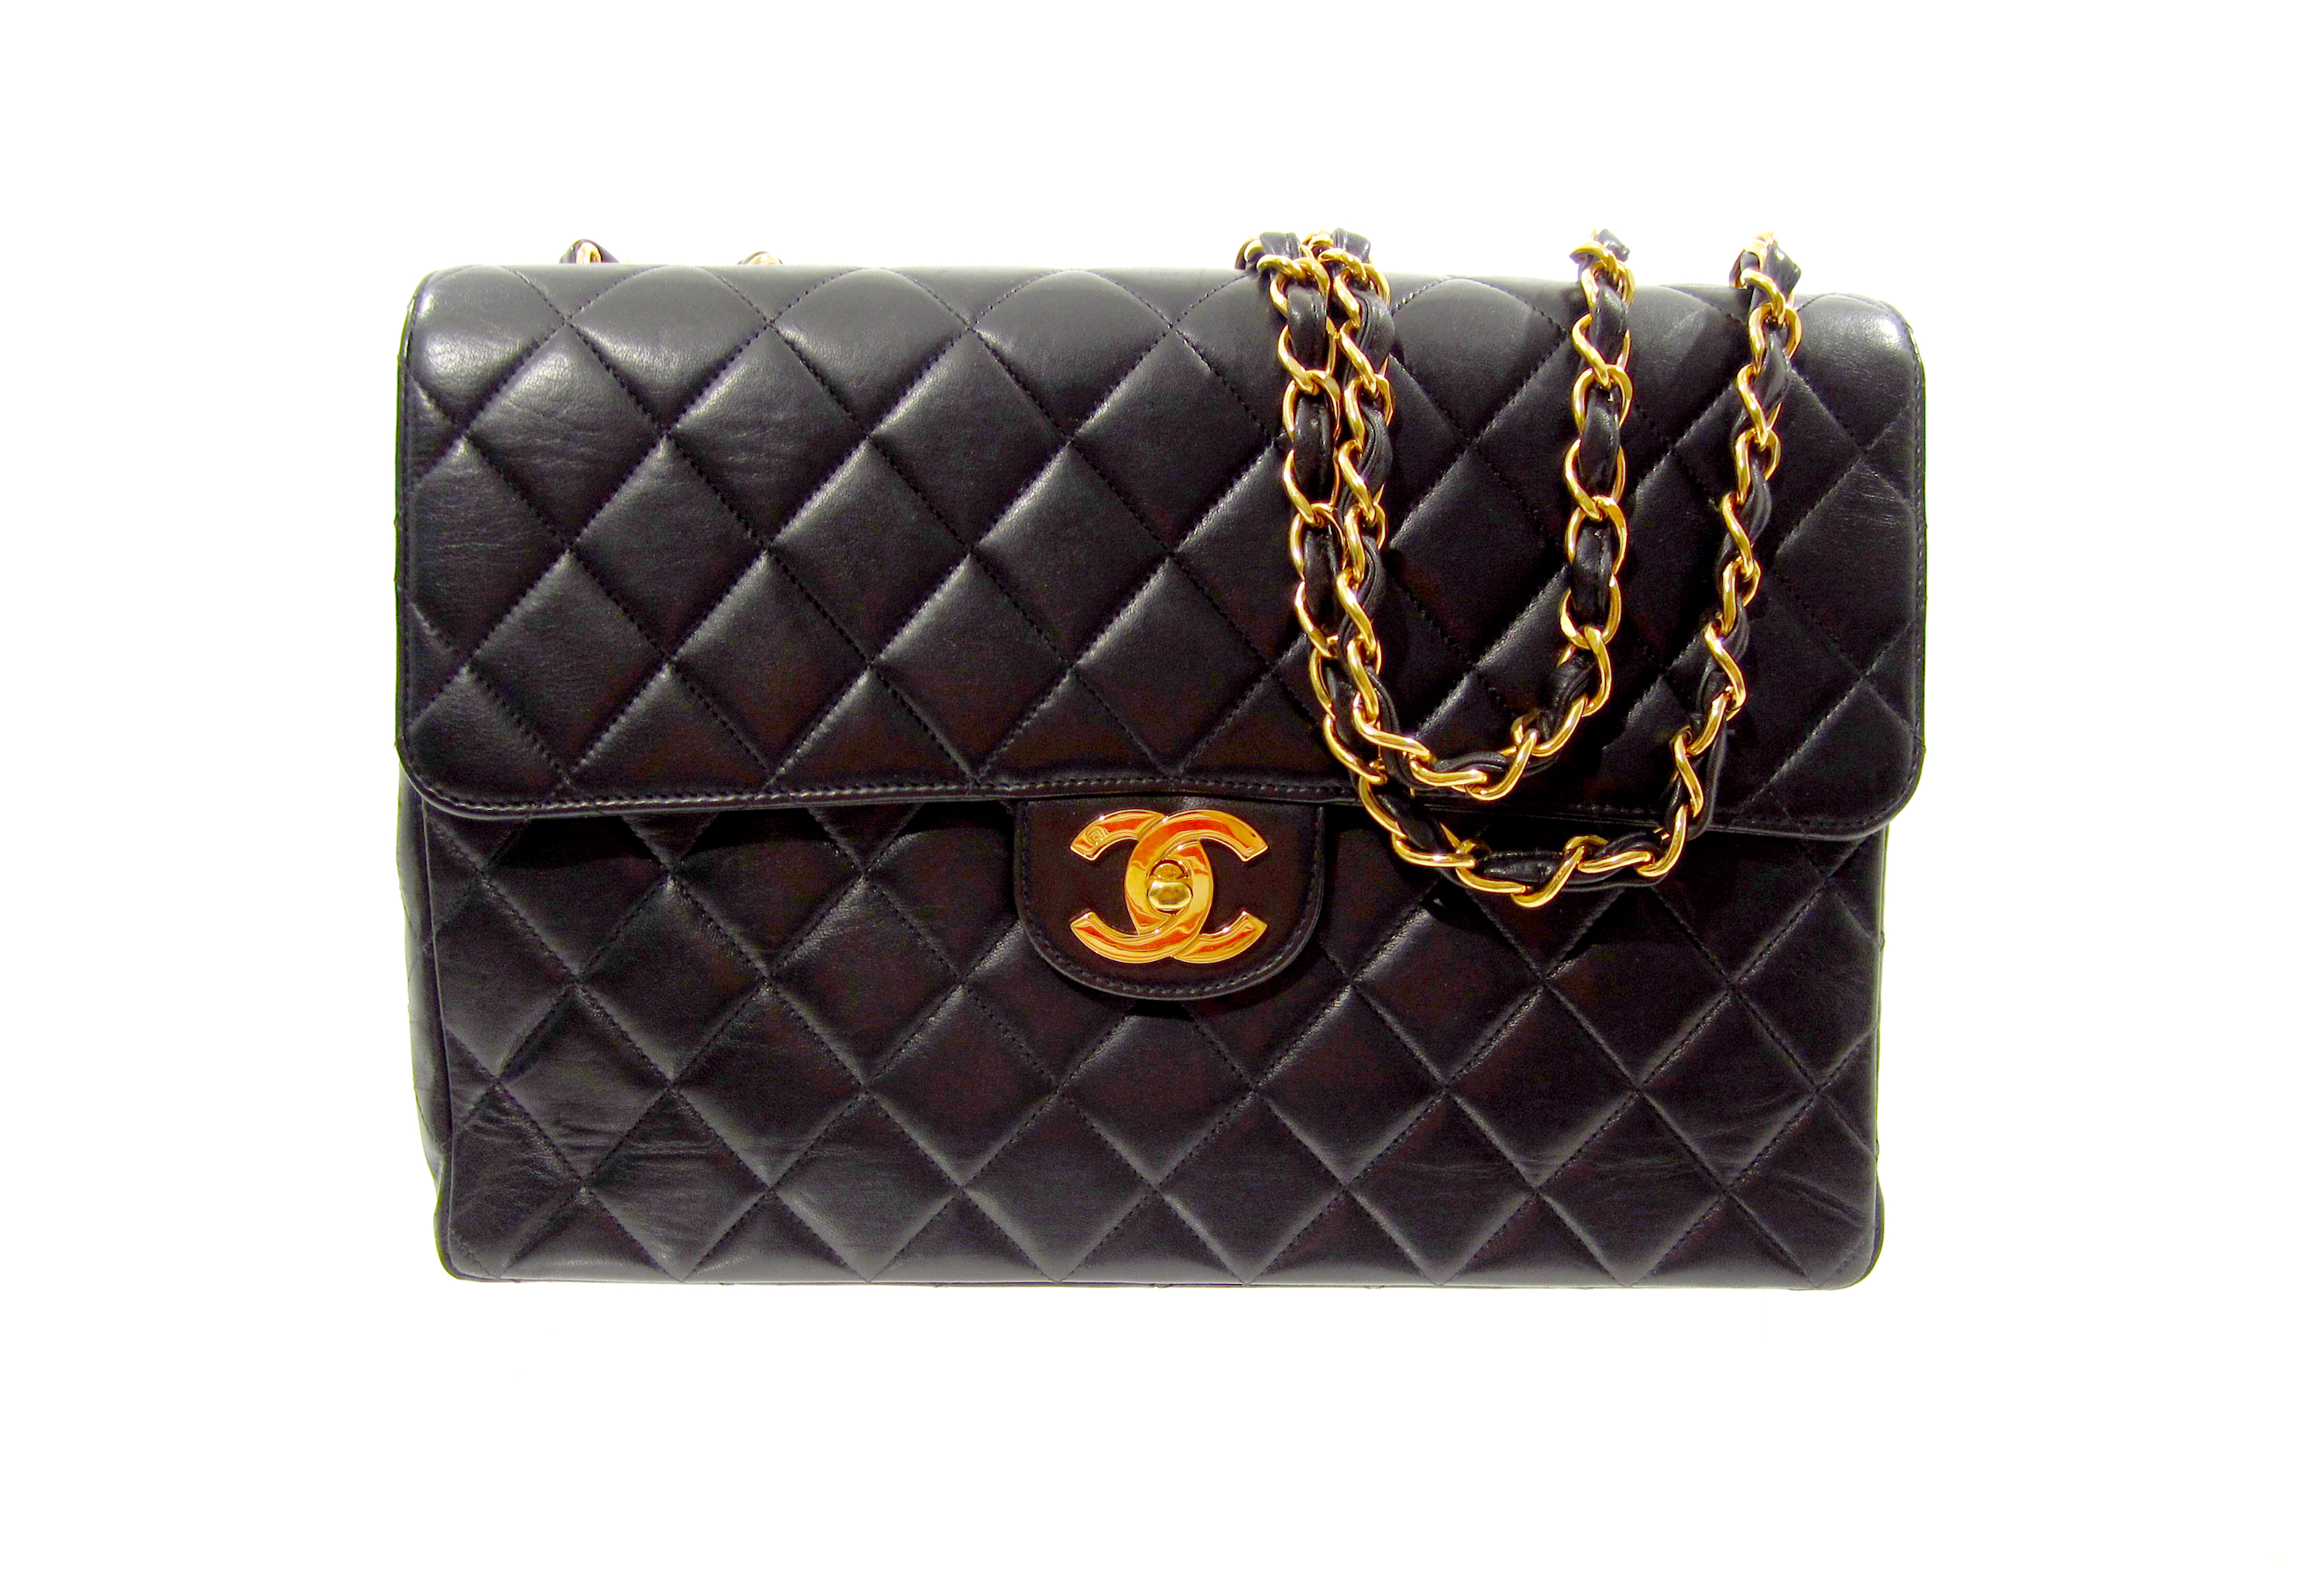 Chanel—Black Leather Quilted Jumbo Handbag–$4,100.00